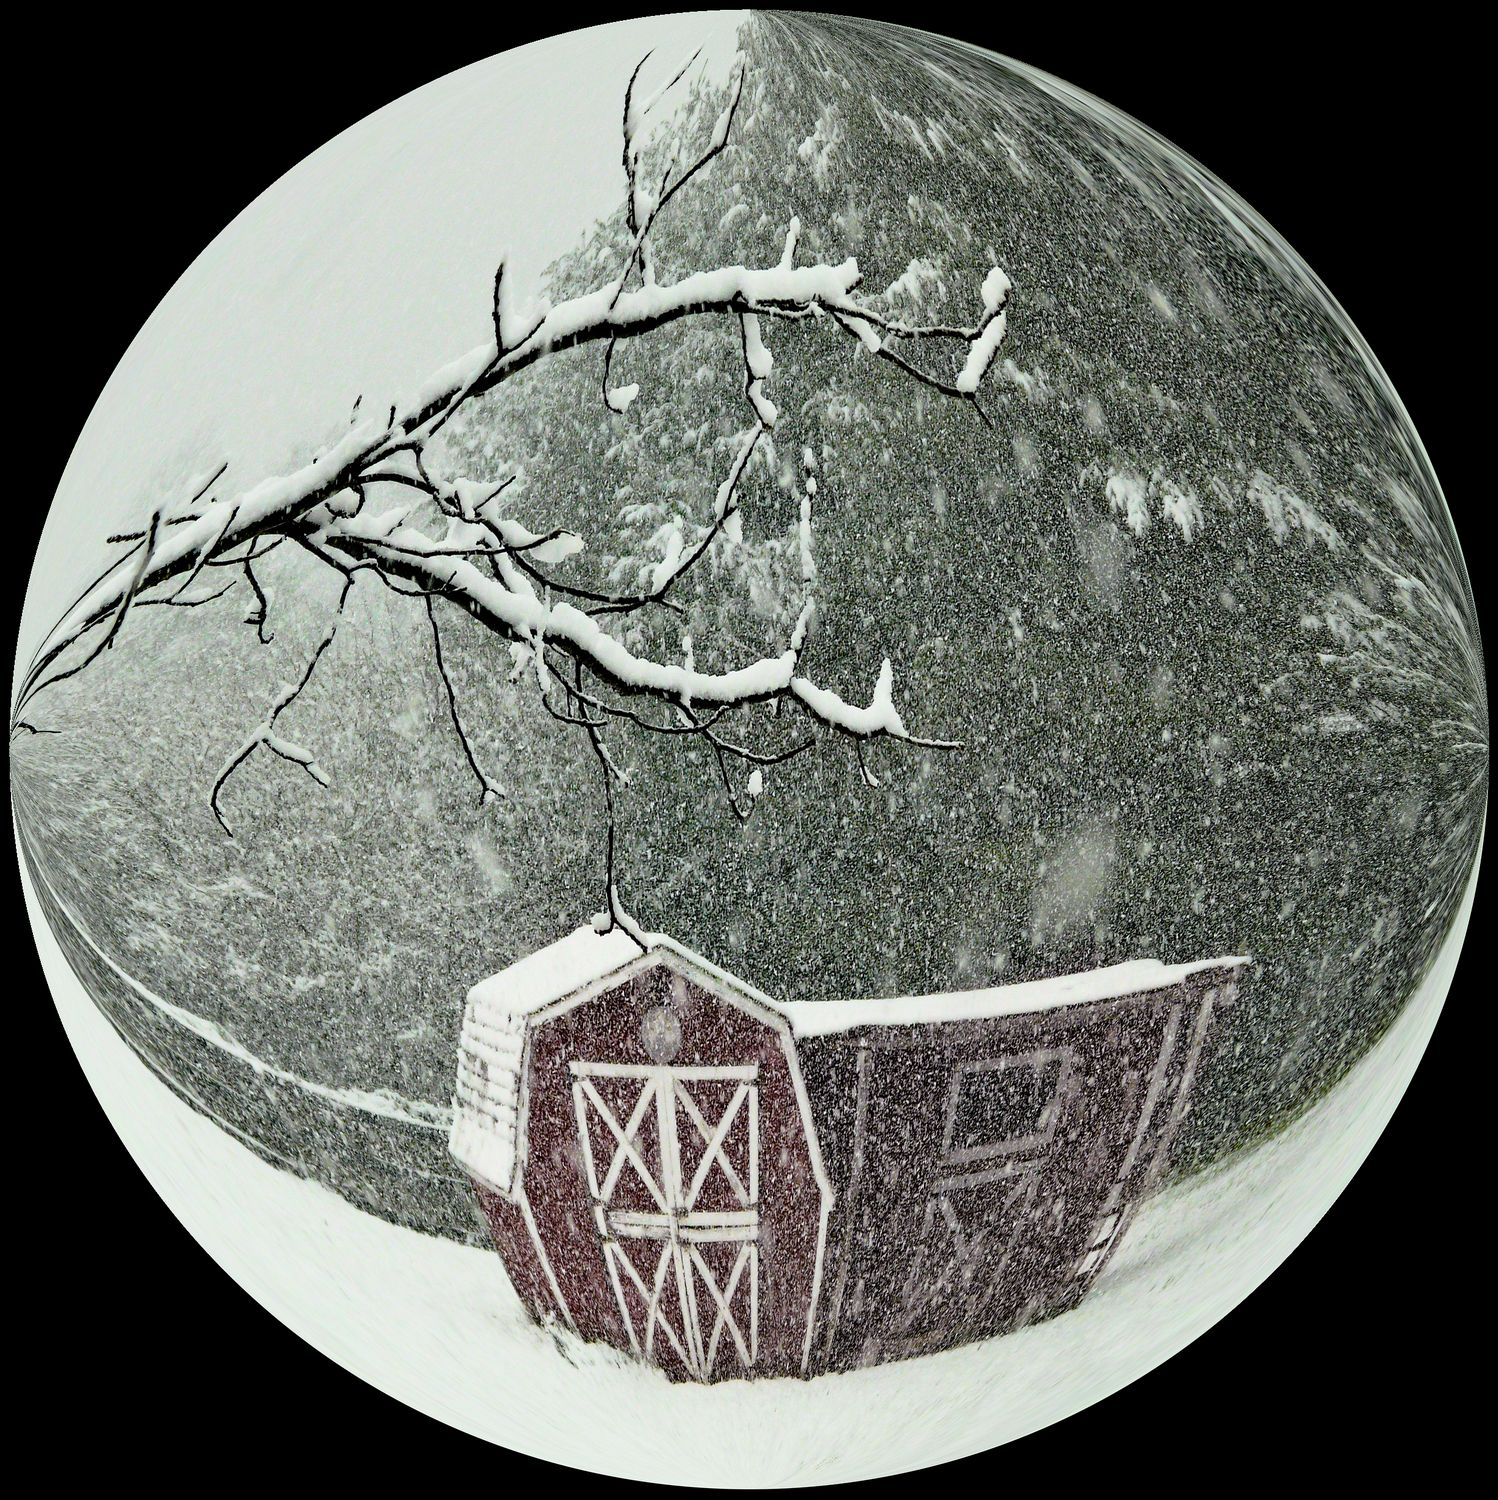 -  Snow globe in a bubble - Bubble Pictures - made with Wilkington-Smythe